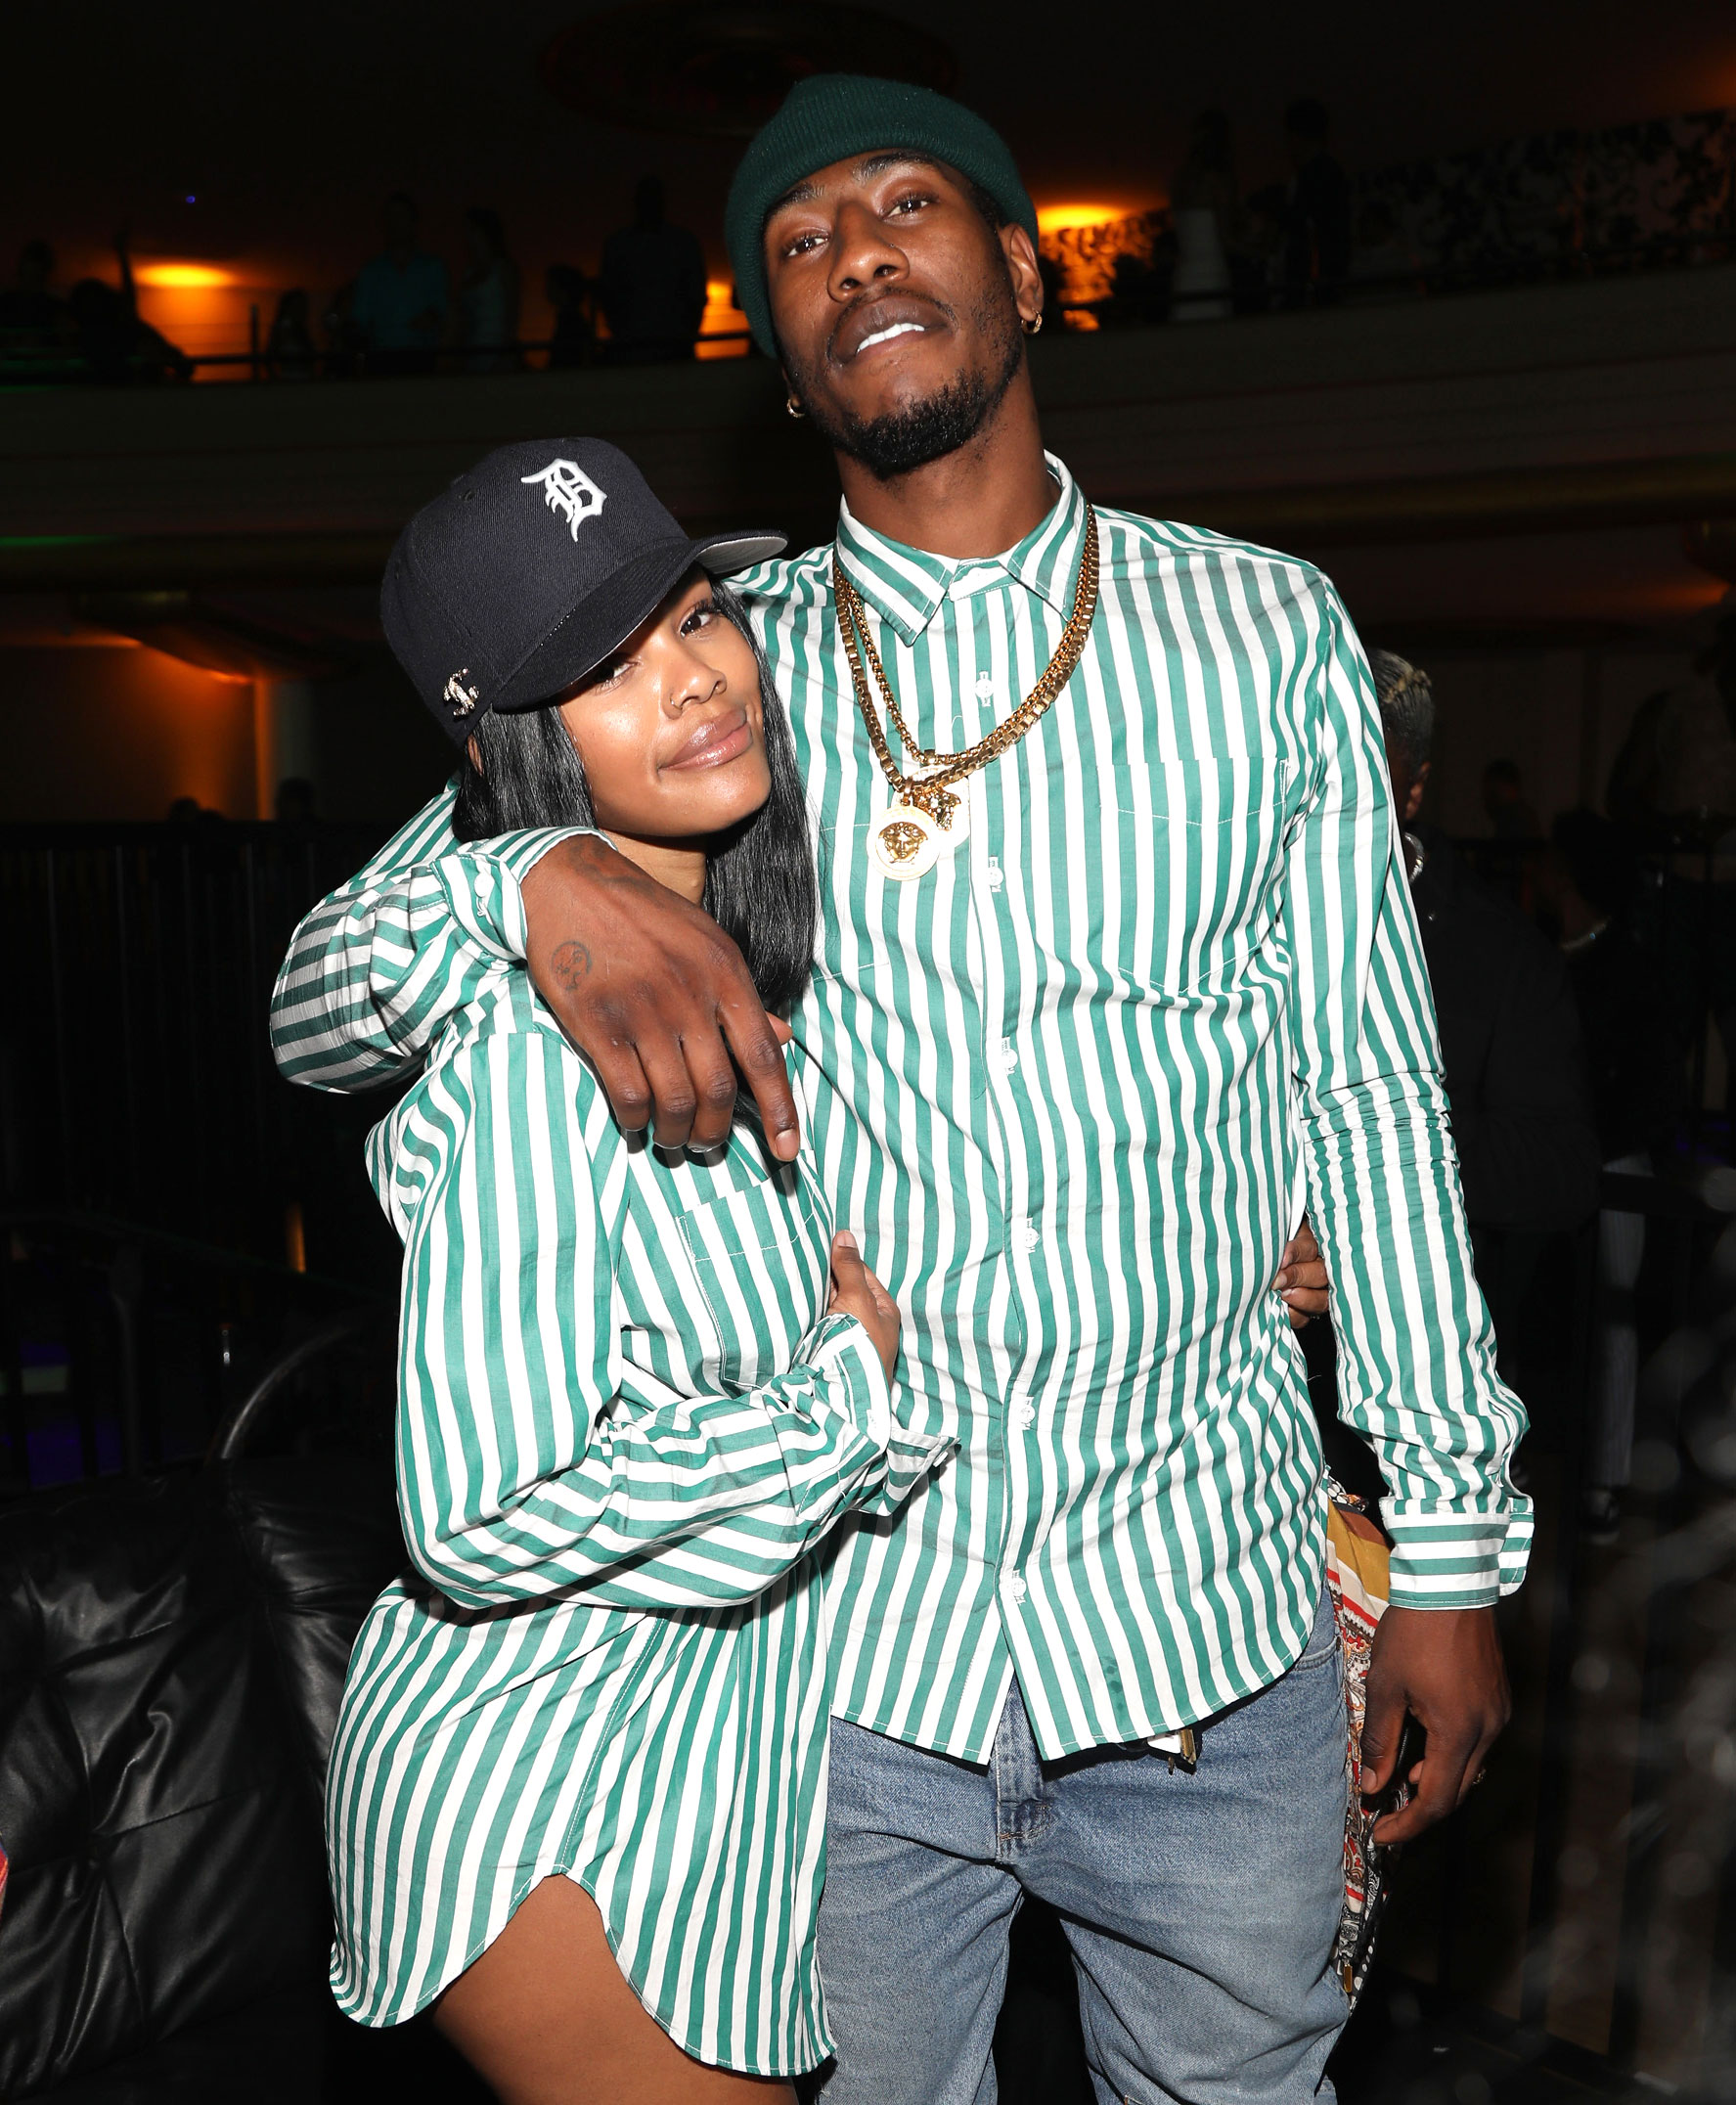 Teyana Taylor Denies Rumors Iman Shumpert Impregnated Another Woman - Teyana Taylor and Iman Shumpert attend The 2018 Maxim Hot 100 Party at Hollywood Palladium on July 21, 2018 in Los Angeles, California. (Photo by Jerritt Clark/Getty Images for MaximExperiences)